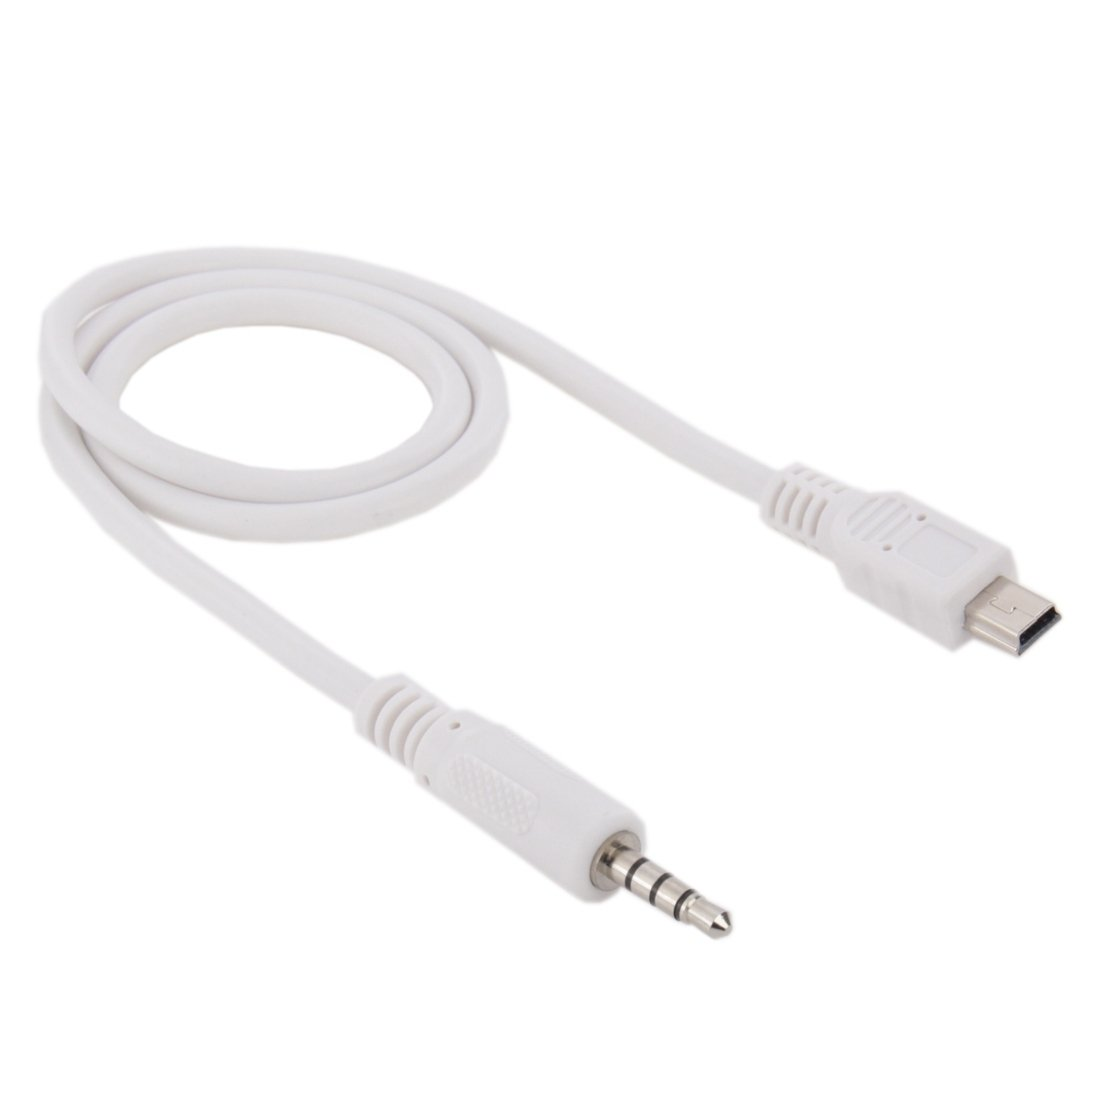 6ft USB Cord Cable Lead for Yamaha AG03 3-Channel USB Audio Interface Mixer